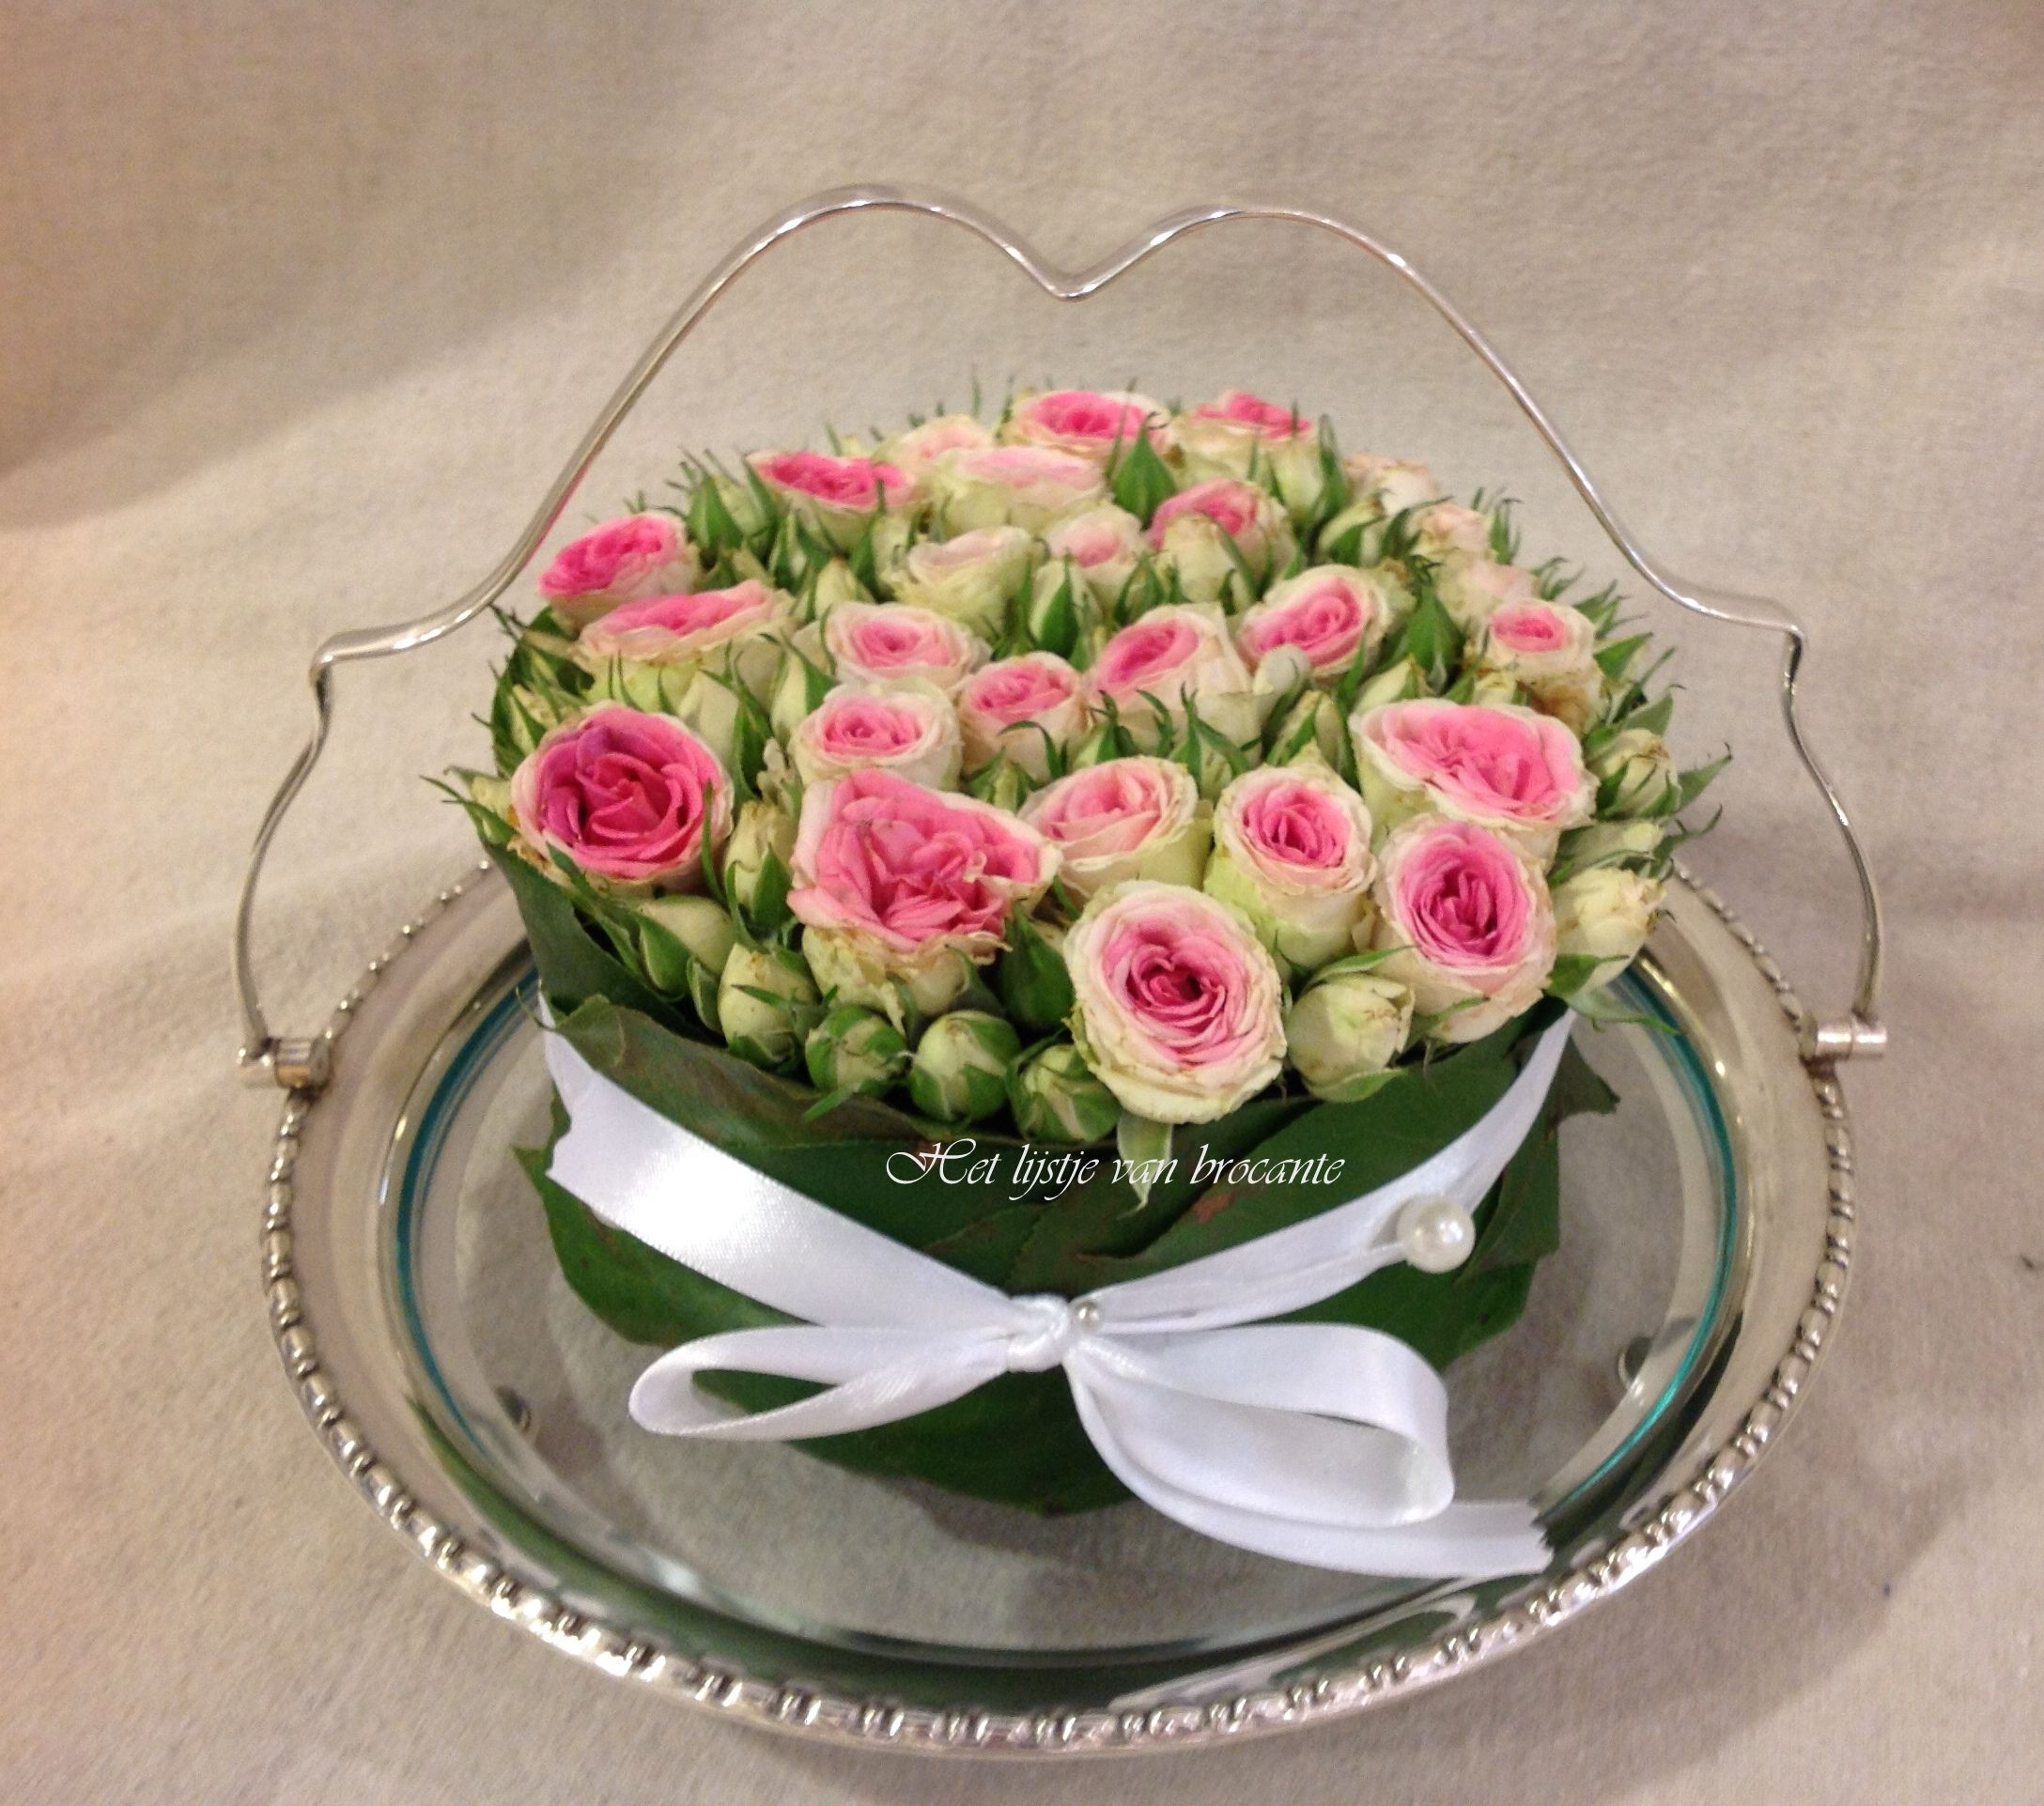 English silver plated cakestand with homemade flower cake.